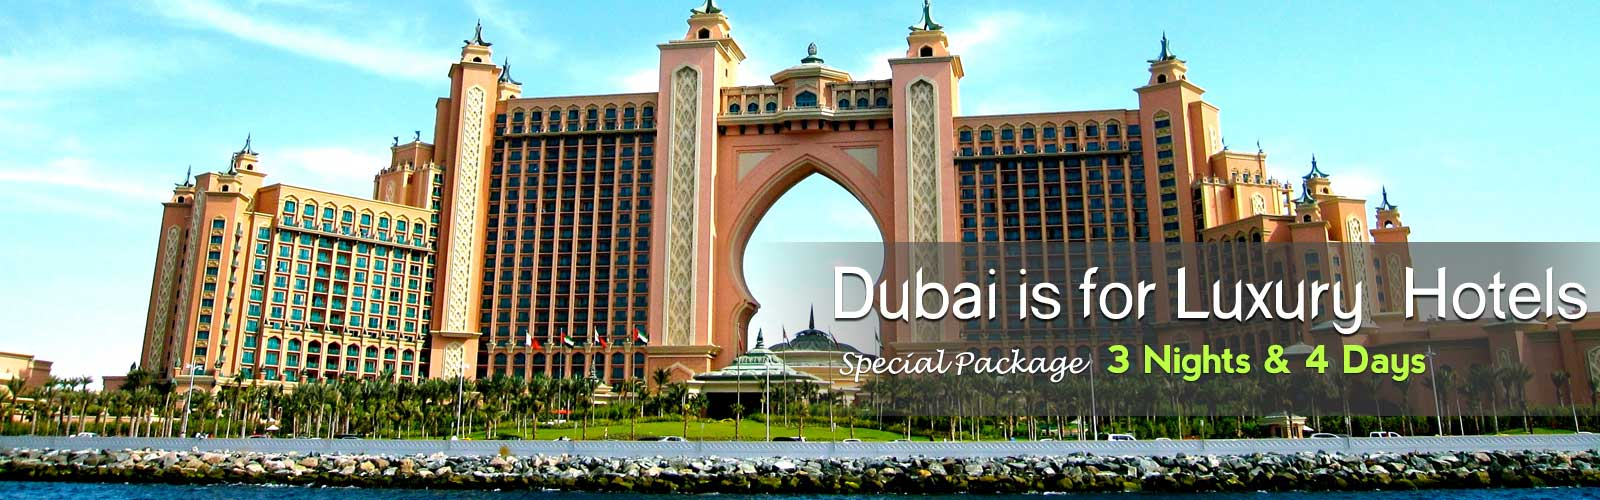 Luxury Hotel Dubai